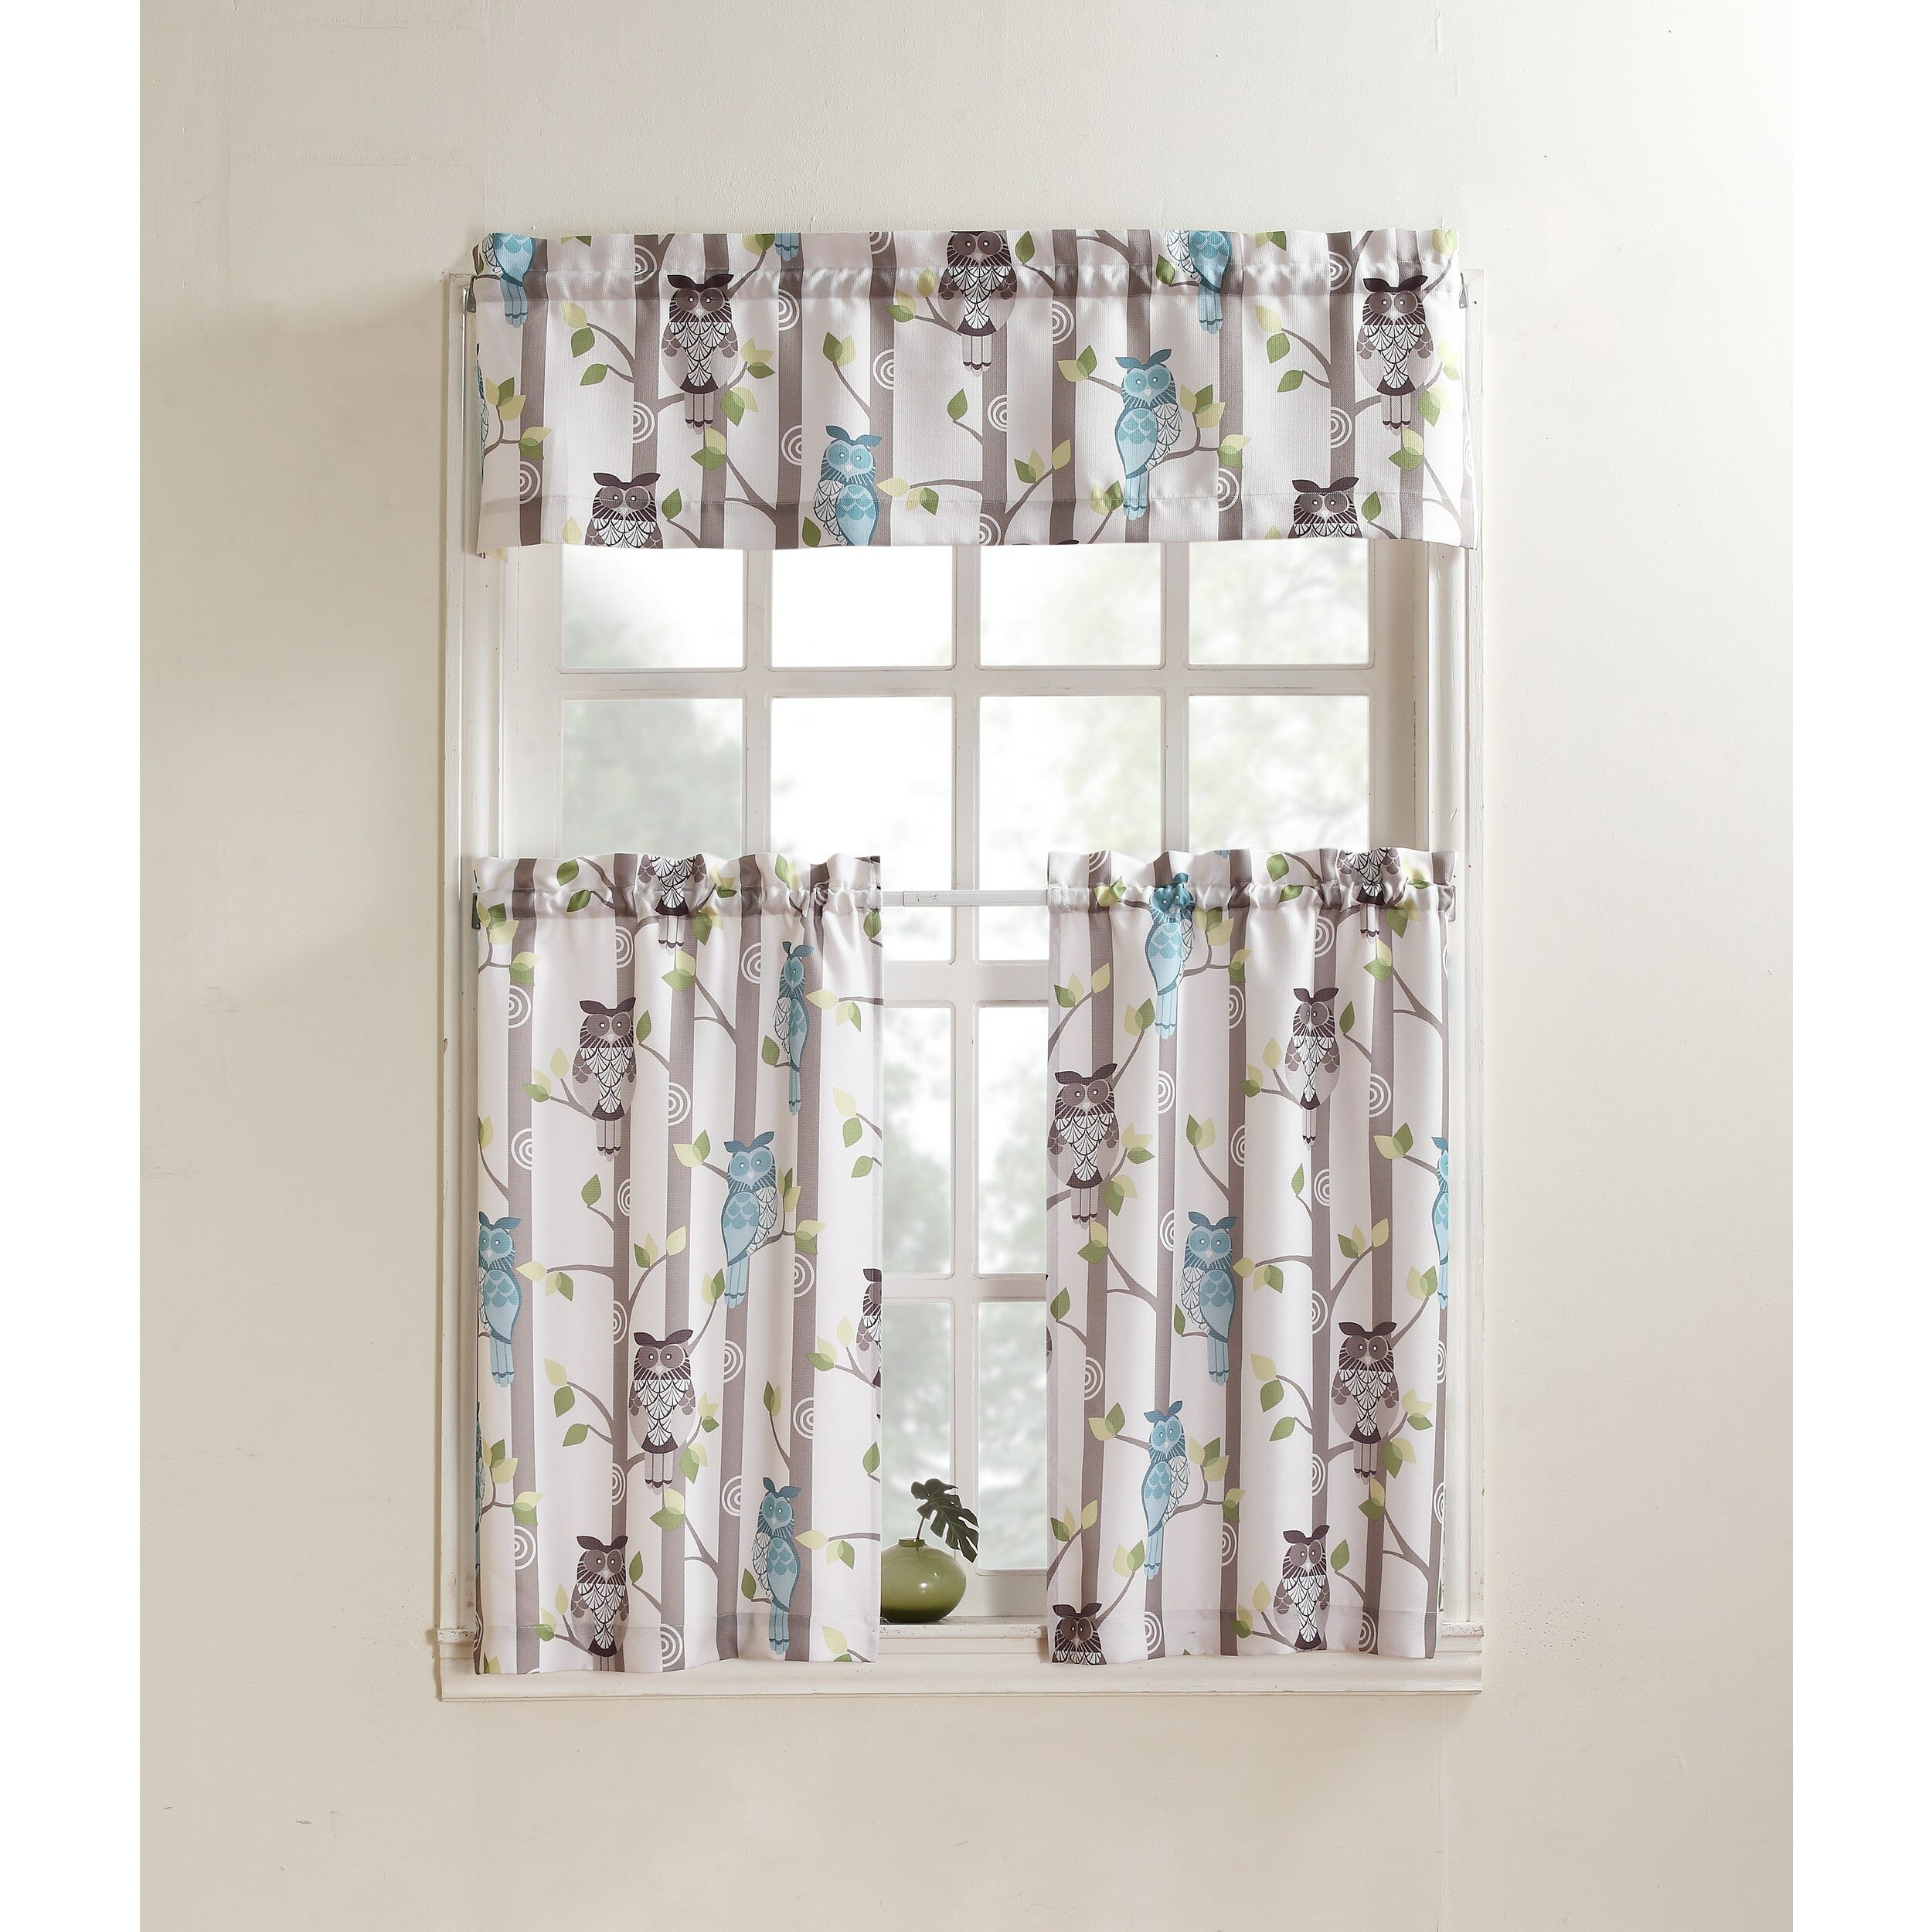 Living Room Valances | Window Curtains and Valances | Window Treatments with Valances